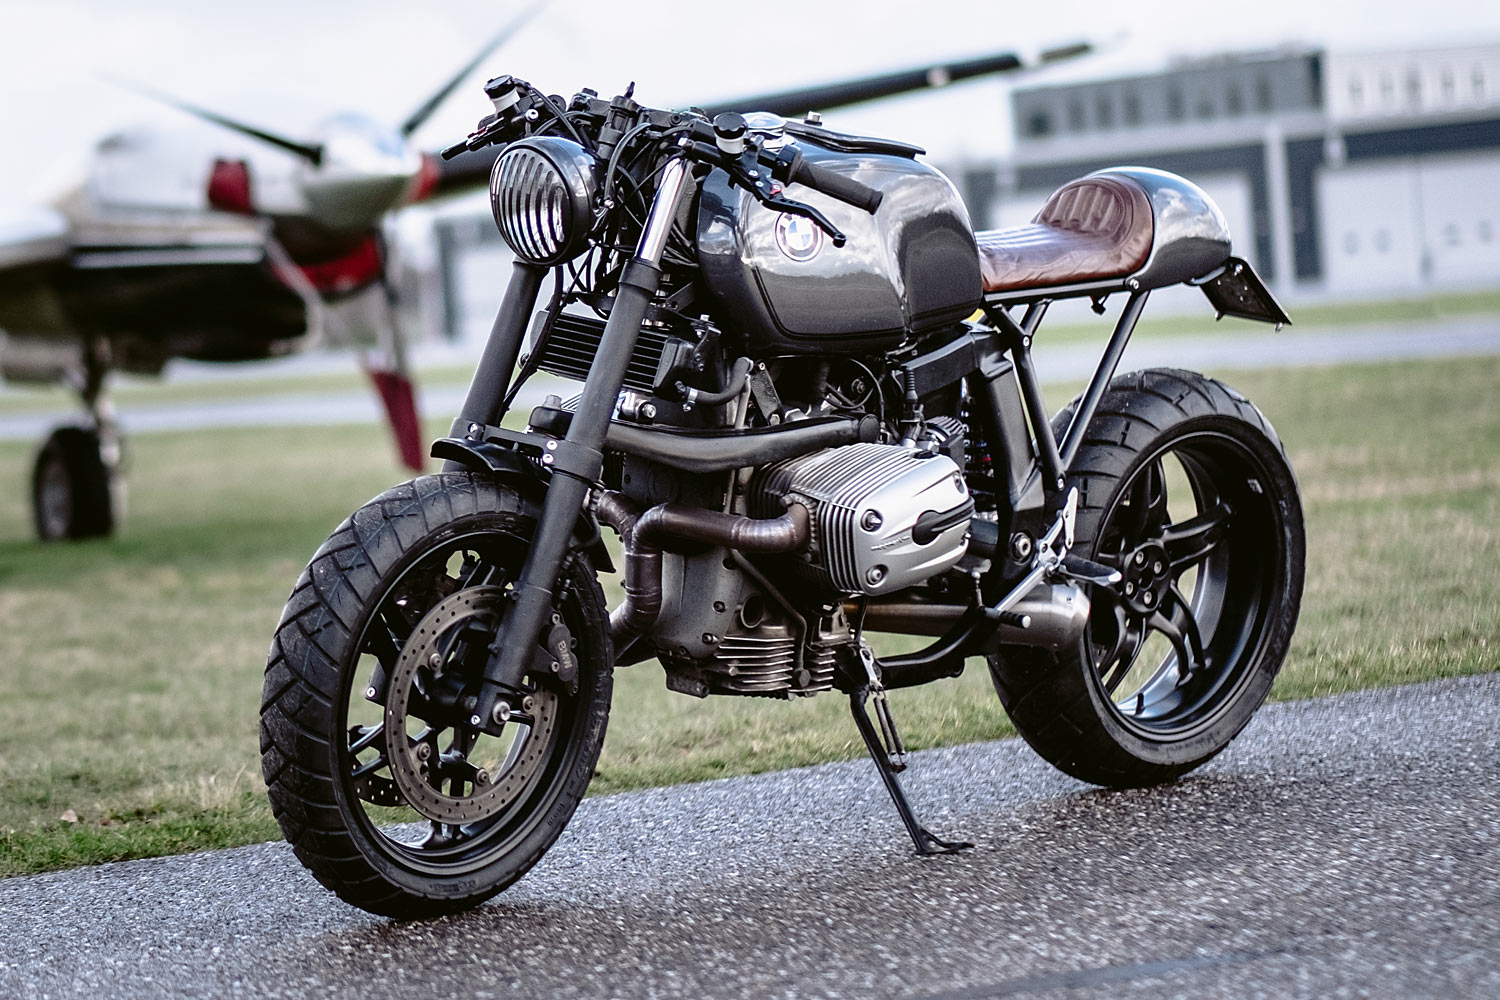 the beast' bmw r1100s cafe racer - moto adonis - pipeburn